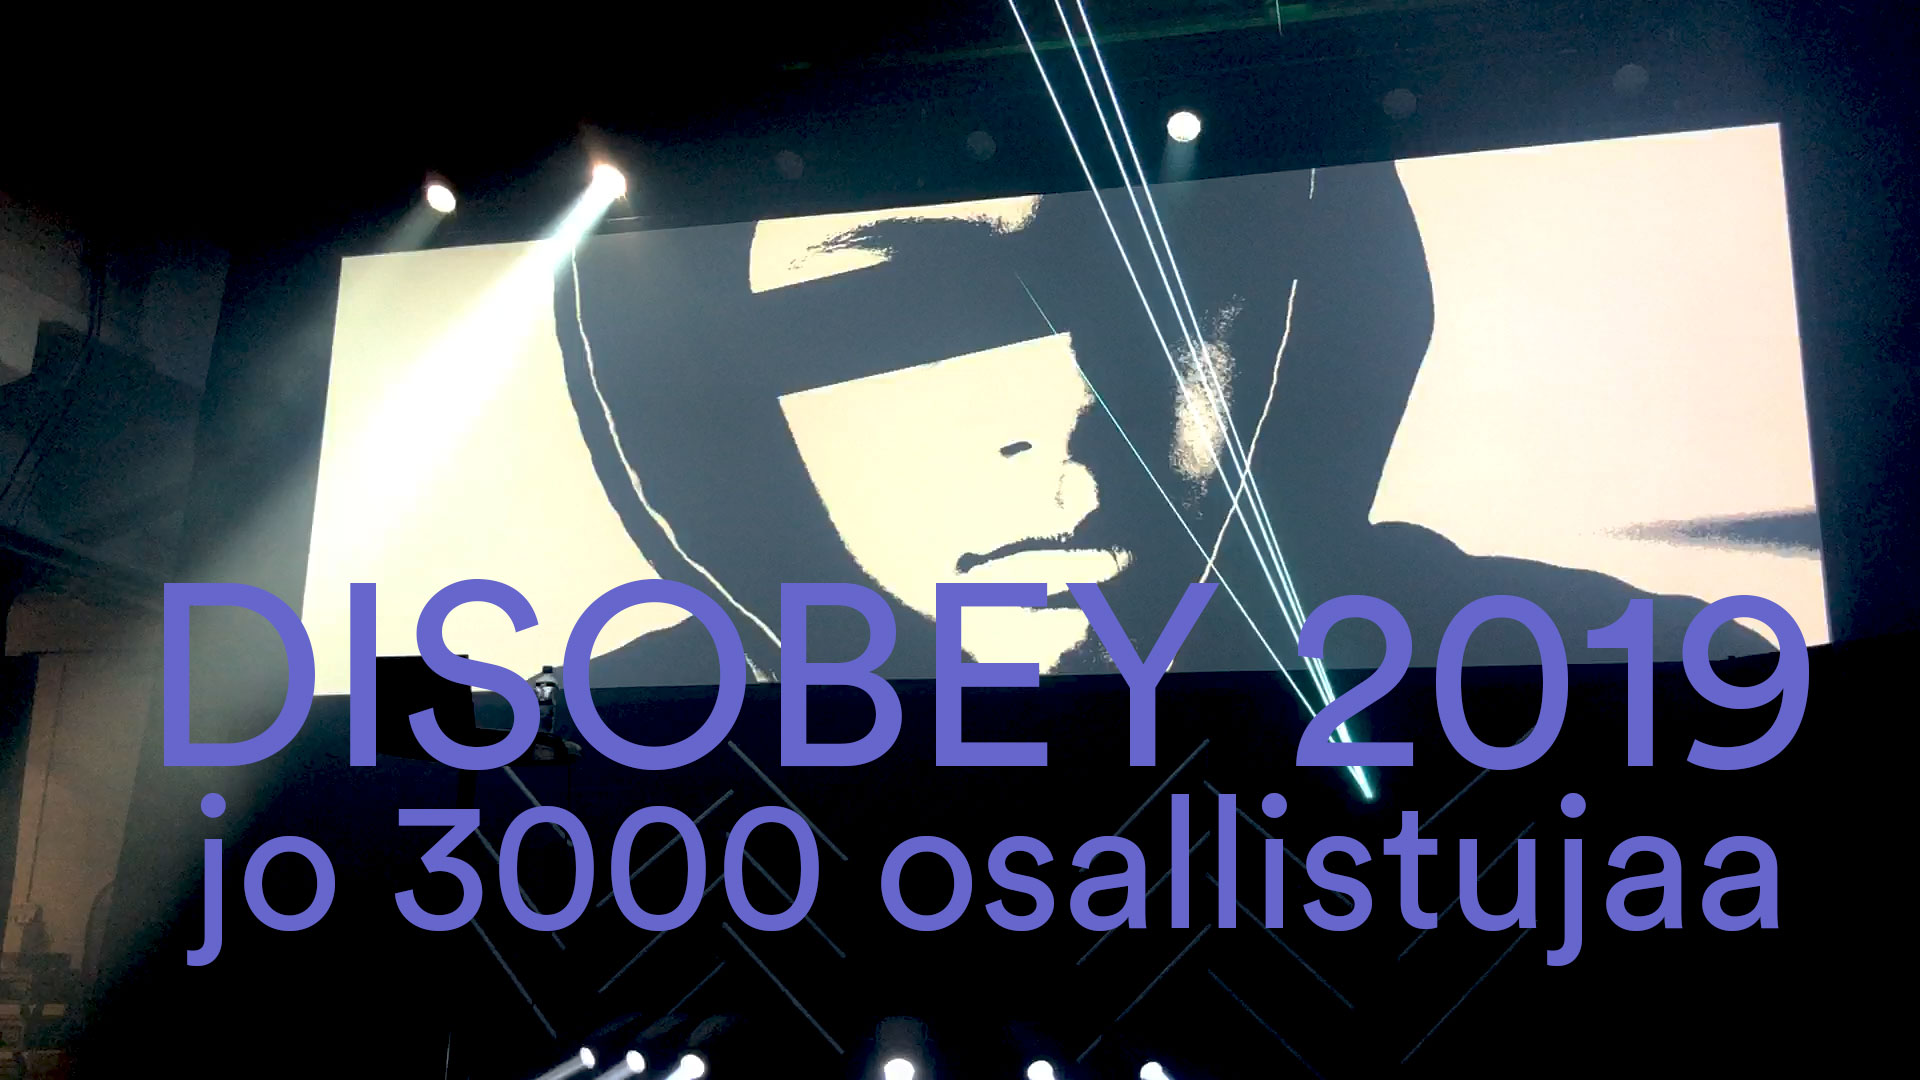 Disobey 2019